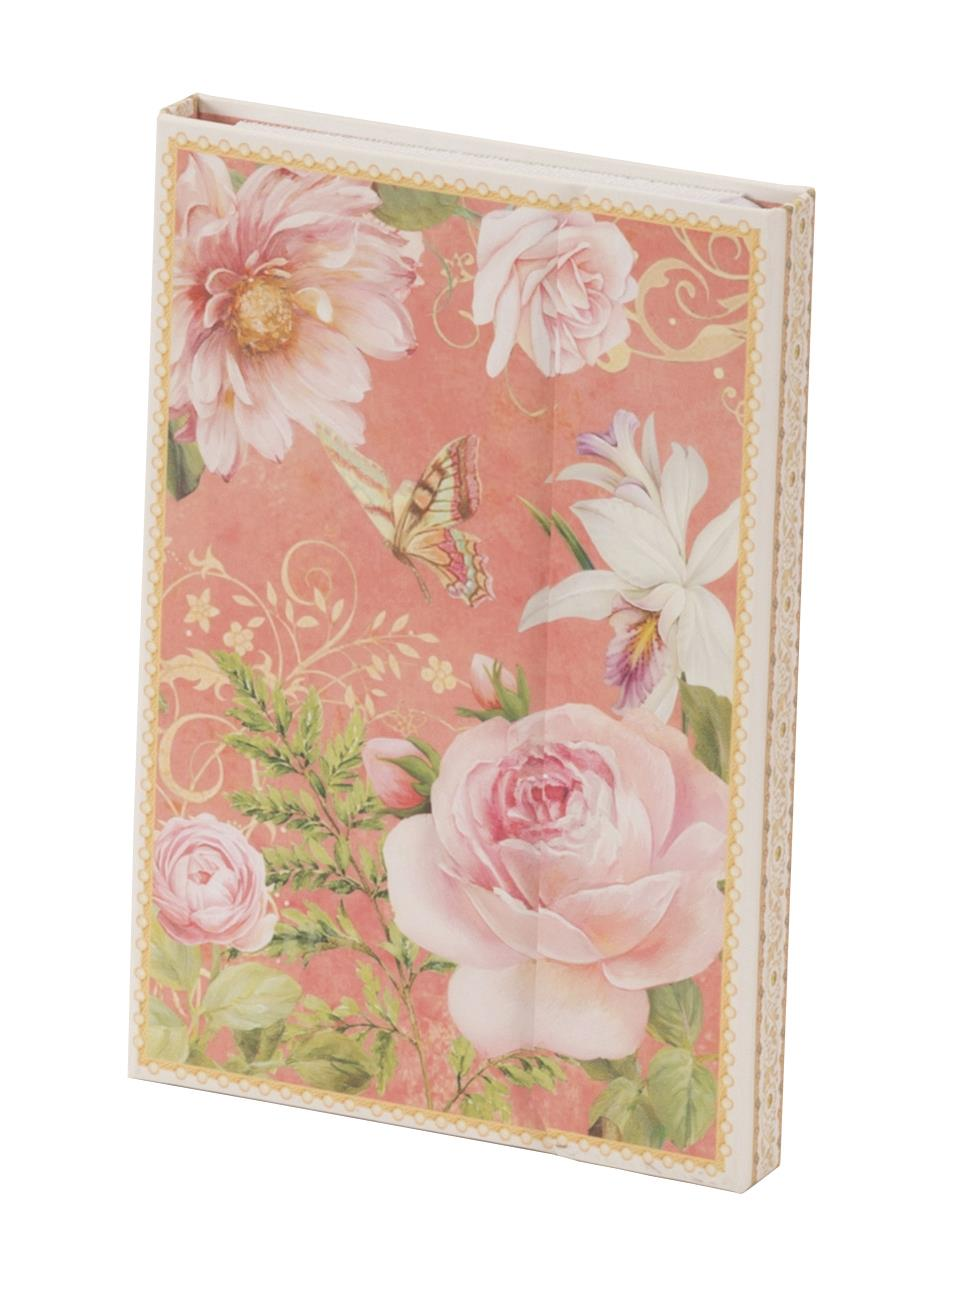 New - Vintage Rose Design Notepad and Shopping List Set